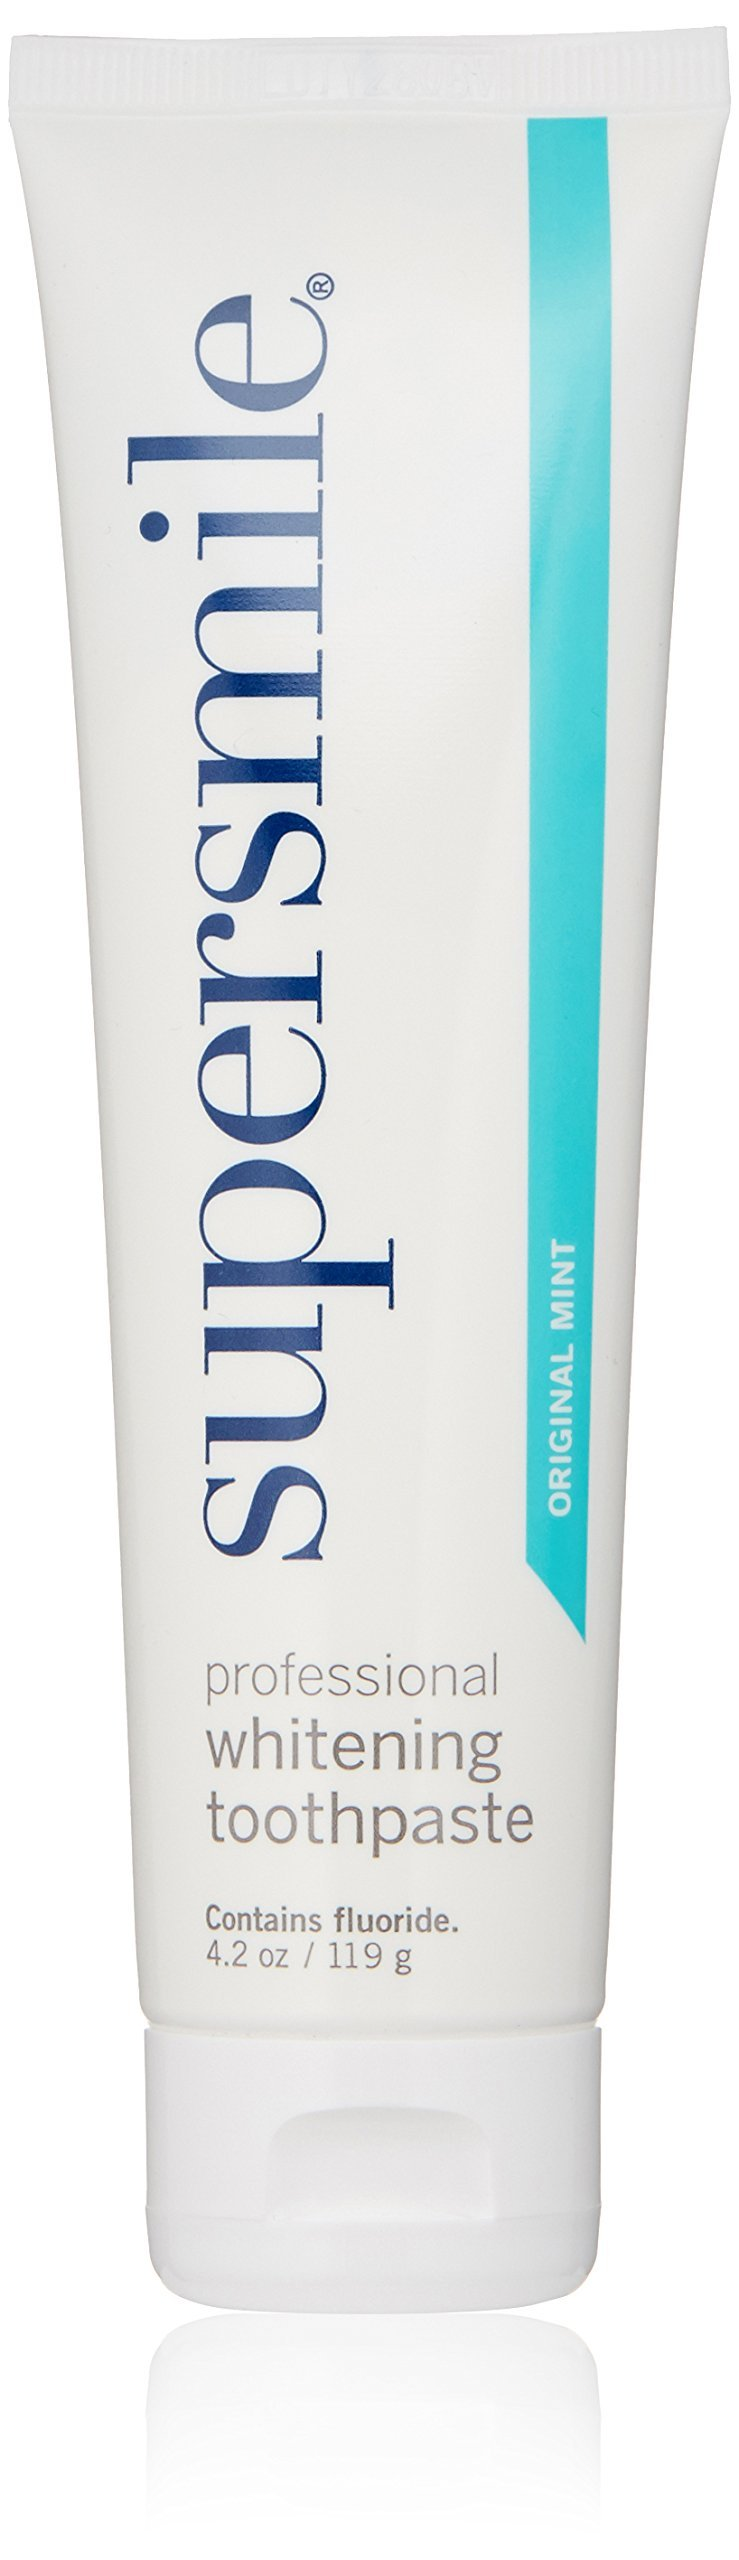 Supersmile Professional Teeth Whitening Toothpaste – Recommended By Cosmetic Dentists, CLINICALLY PROVEN TO WHITEN TEETH AND SUPPORT GUM HEALTH, No Sensitivity - 3 Month Supply